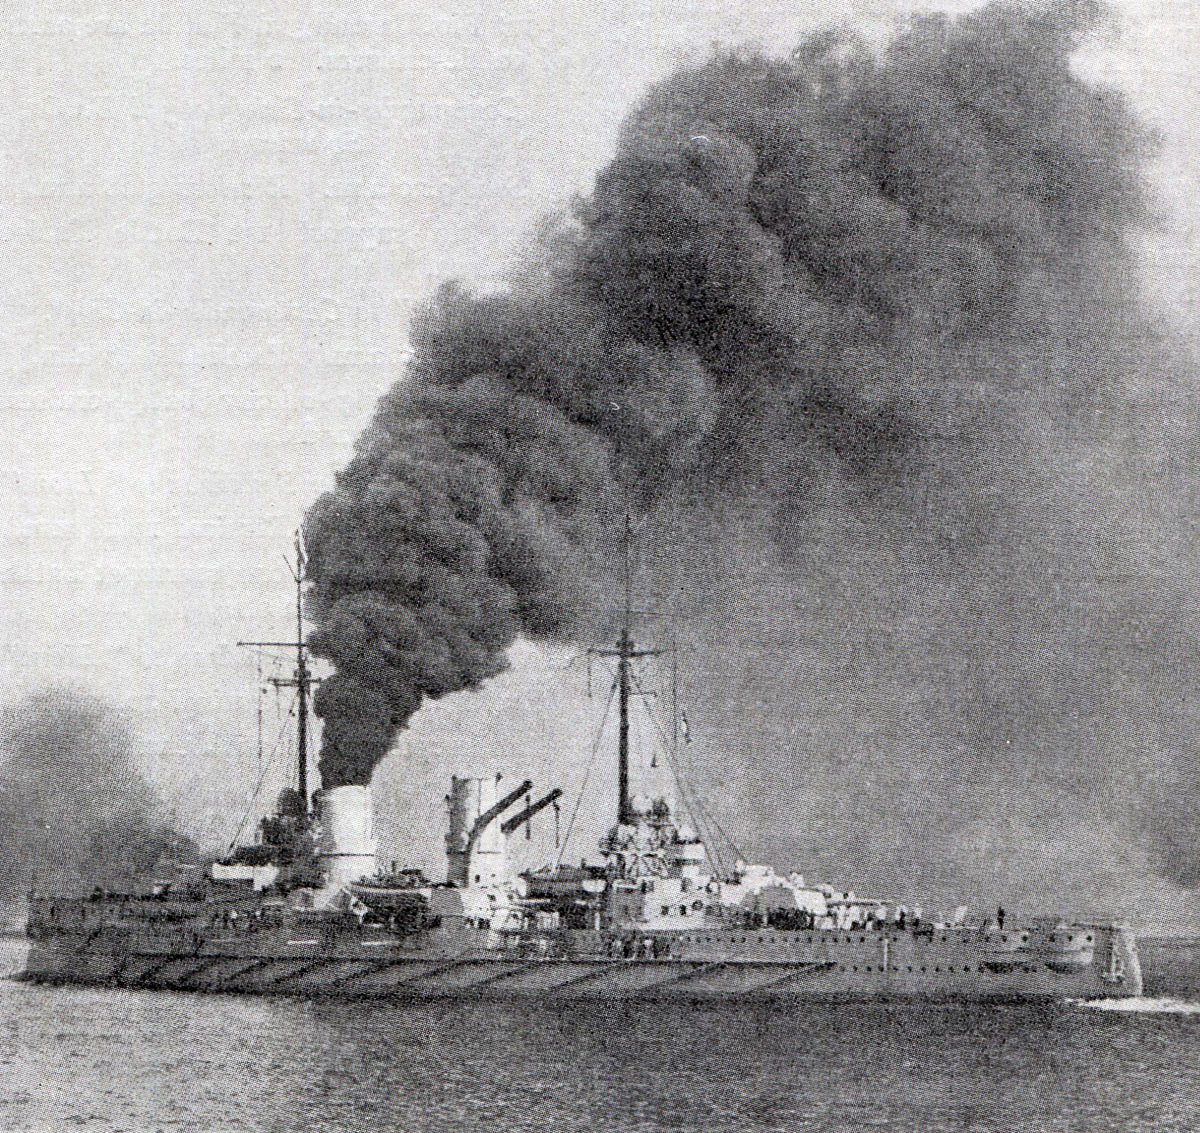 German armoured cruiser SMS Blucher sunk in the Battle of Dogger Bank on 24th January 1915 in the First World War